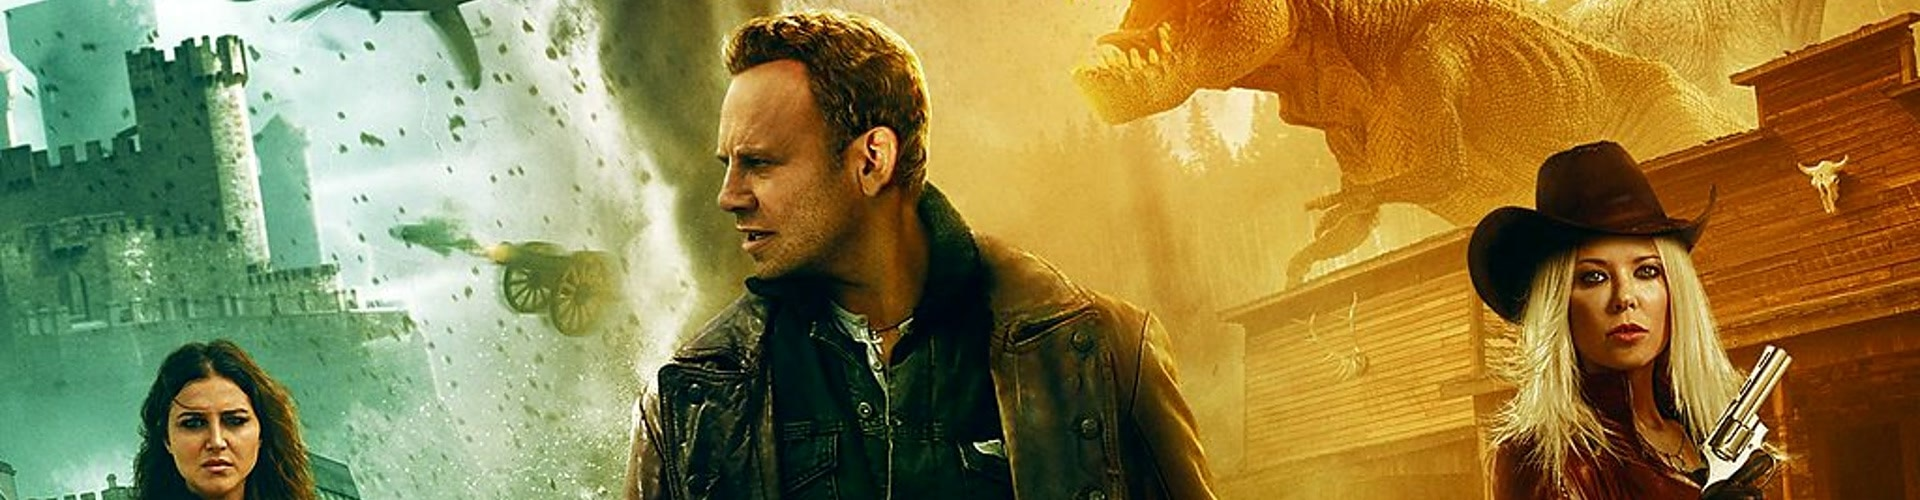 Watch The Last Sharknado: It's Ab... Online